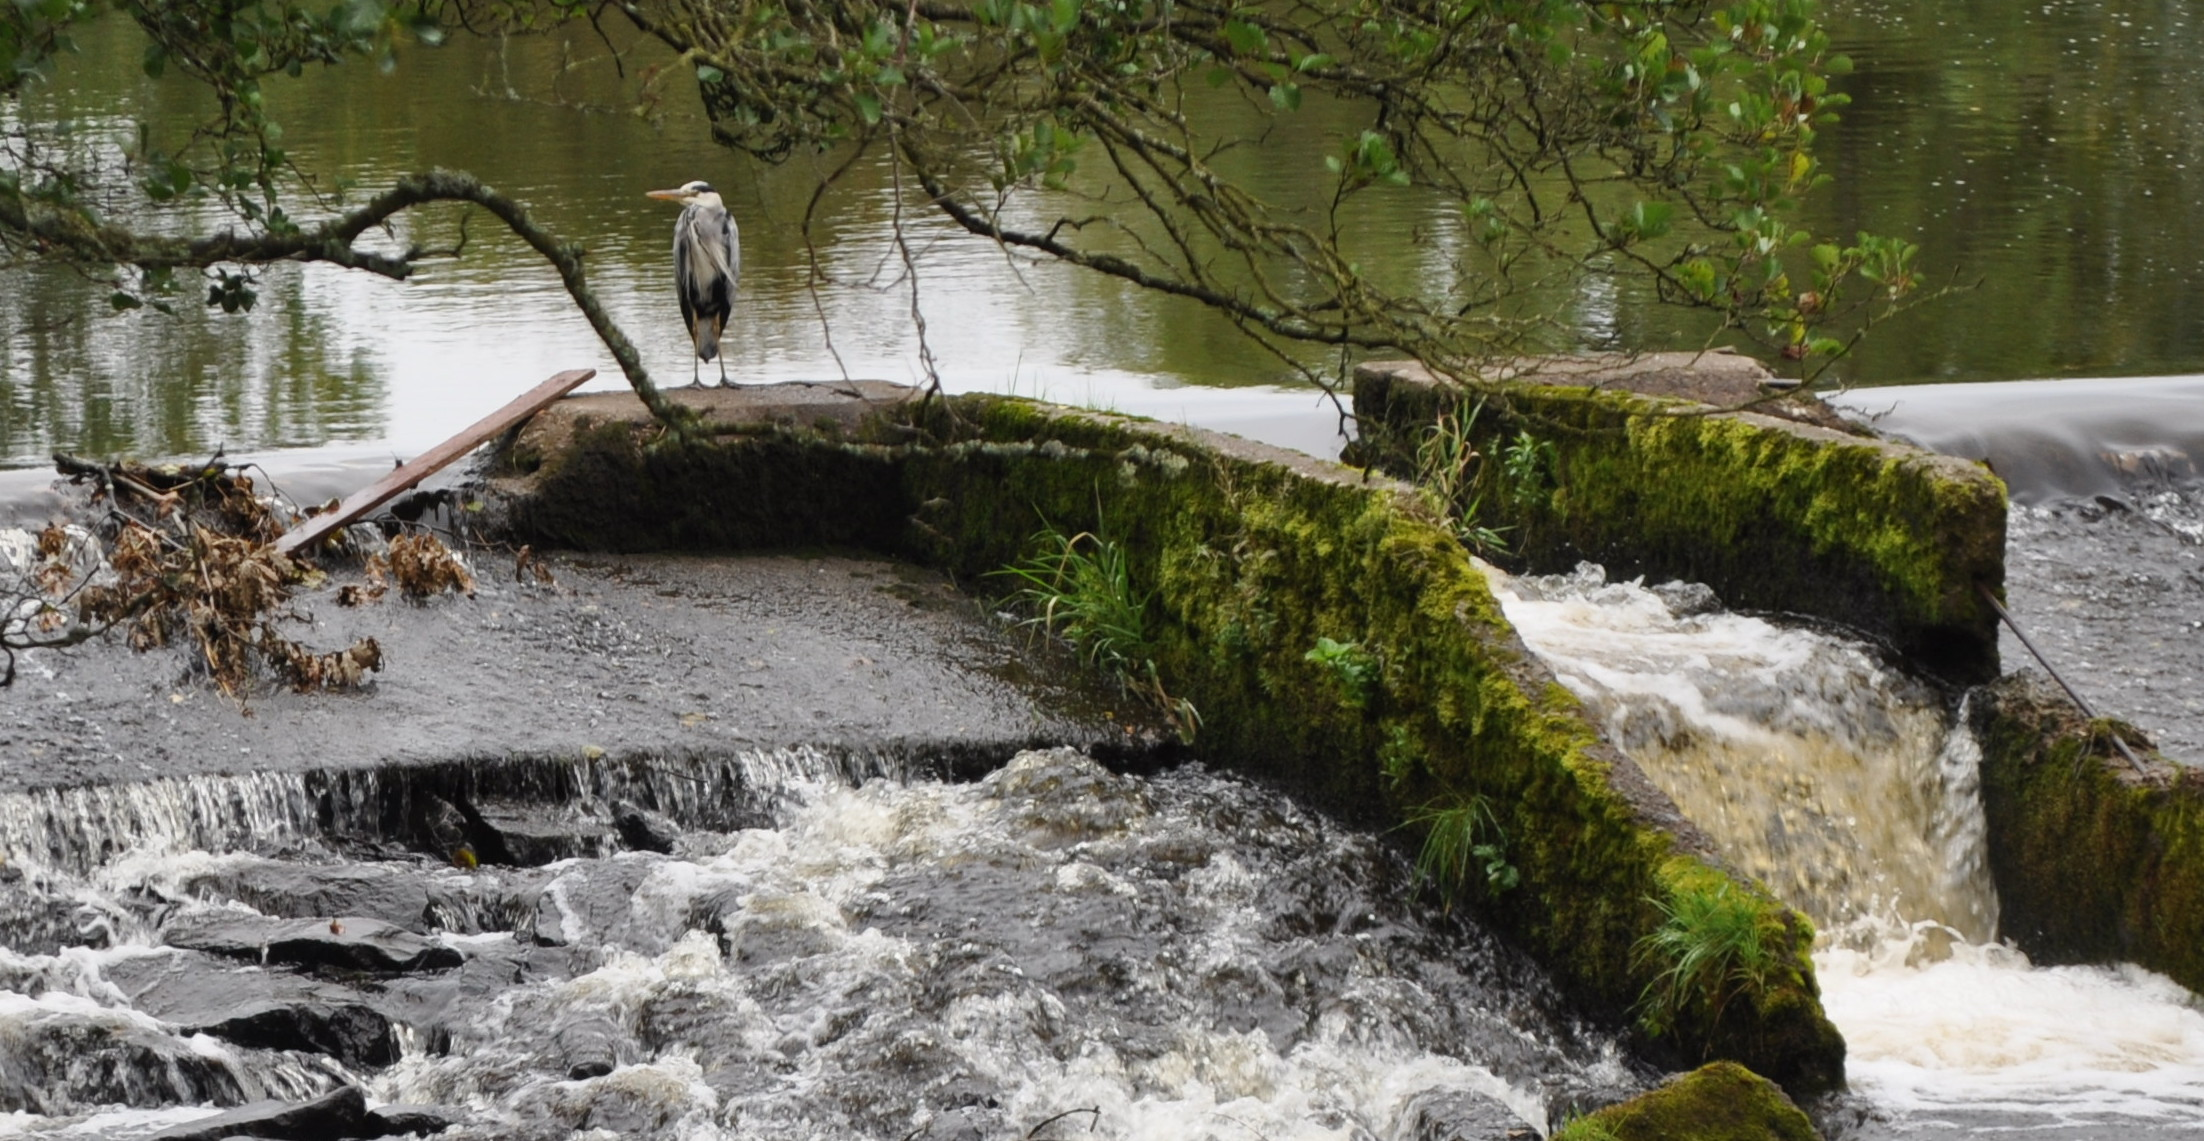 Landowners bid to shoot more protected birds to save wild salmon